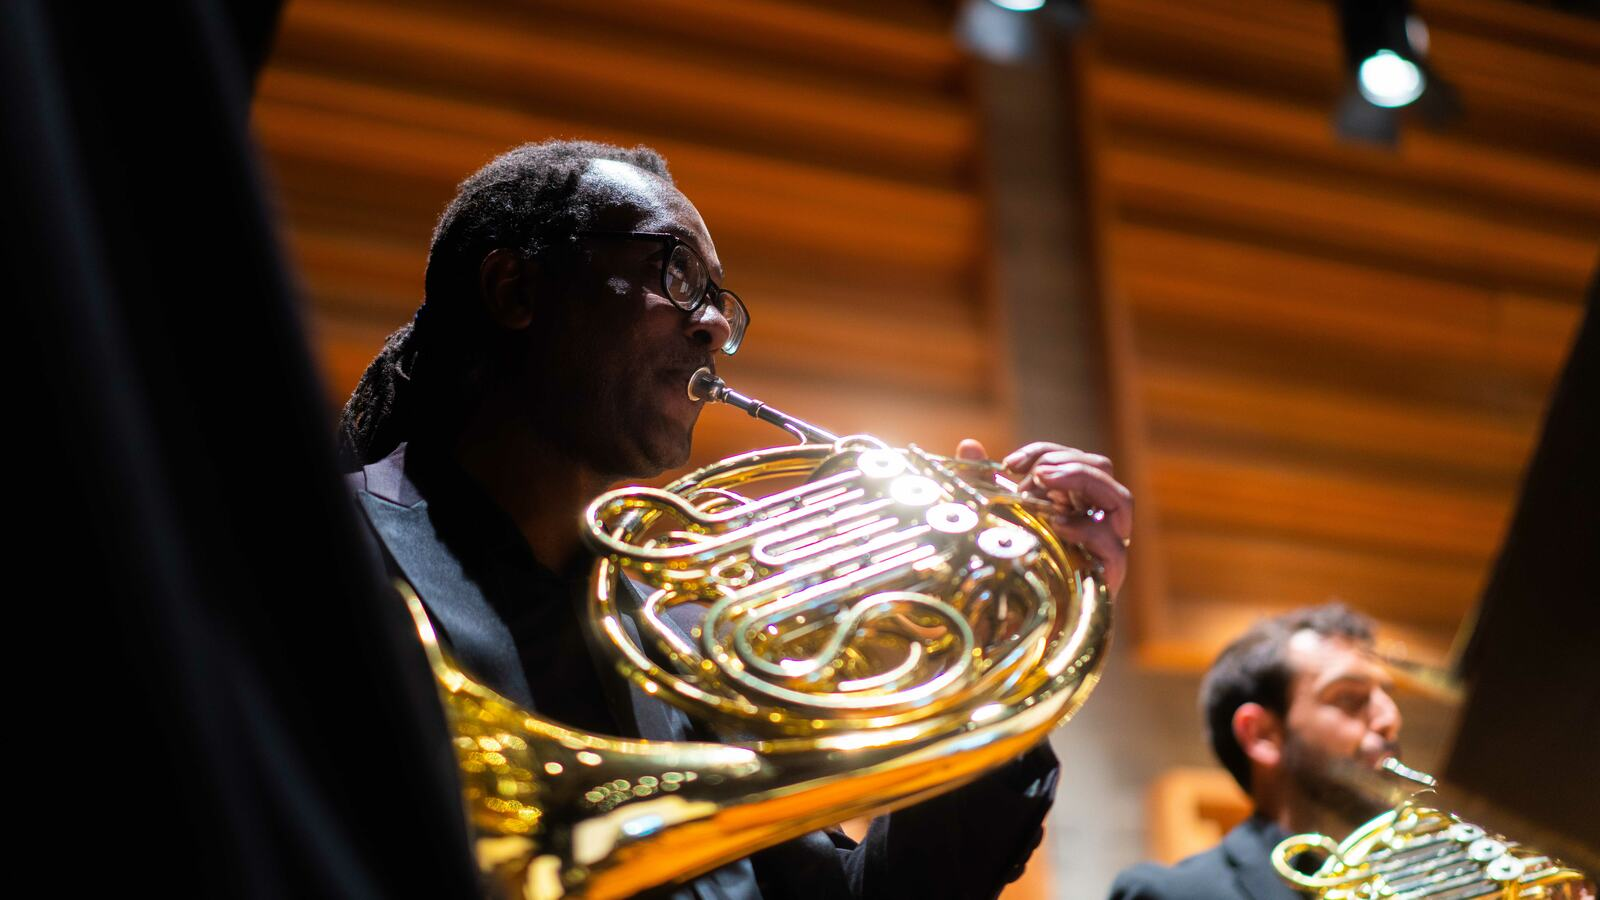 A member of Chineke! playing the French horn